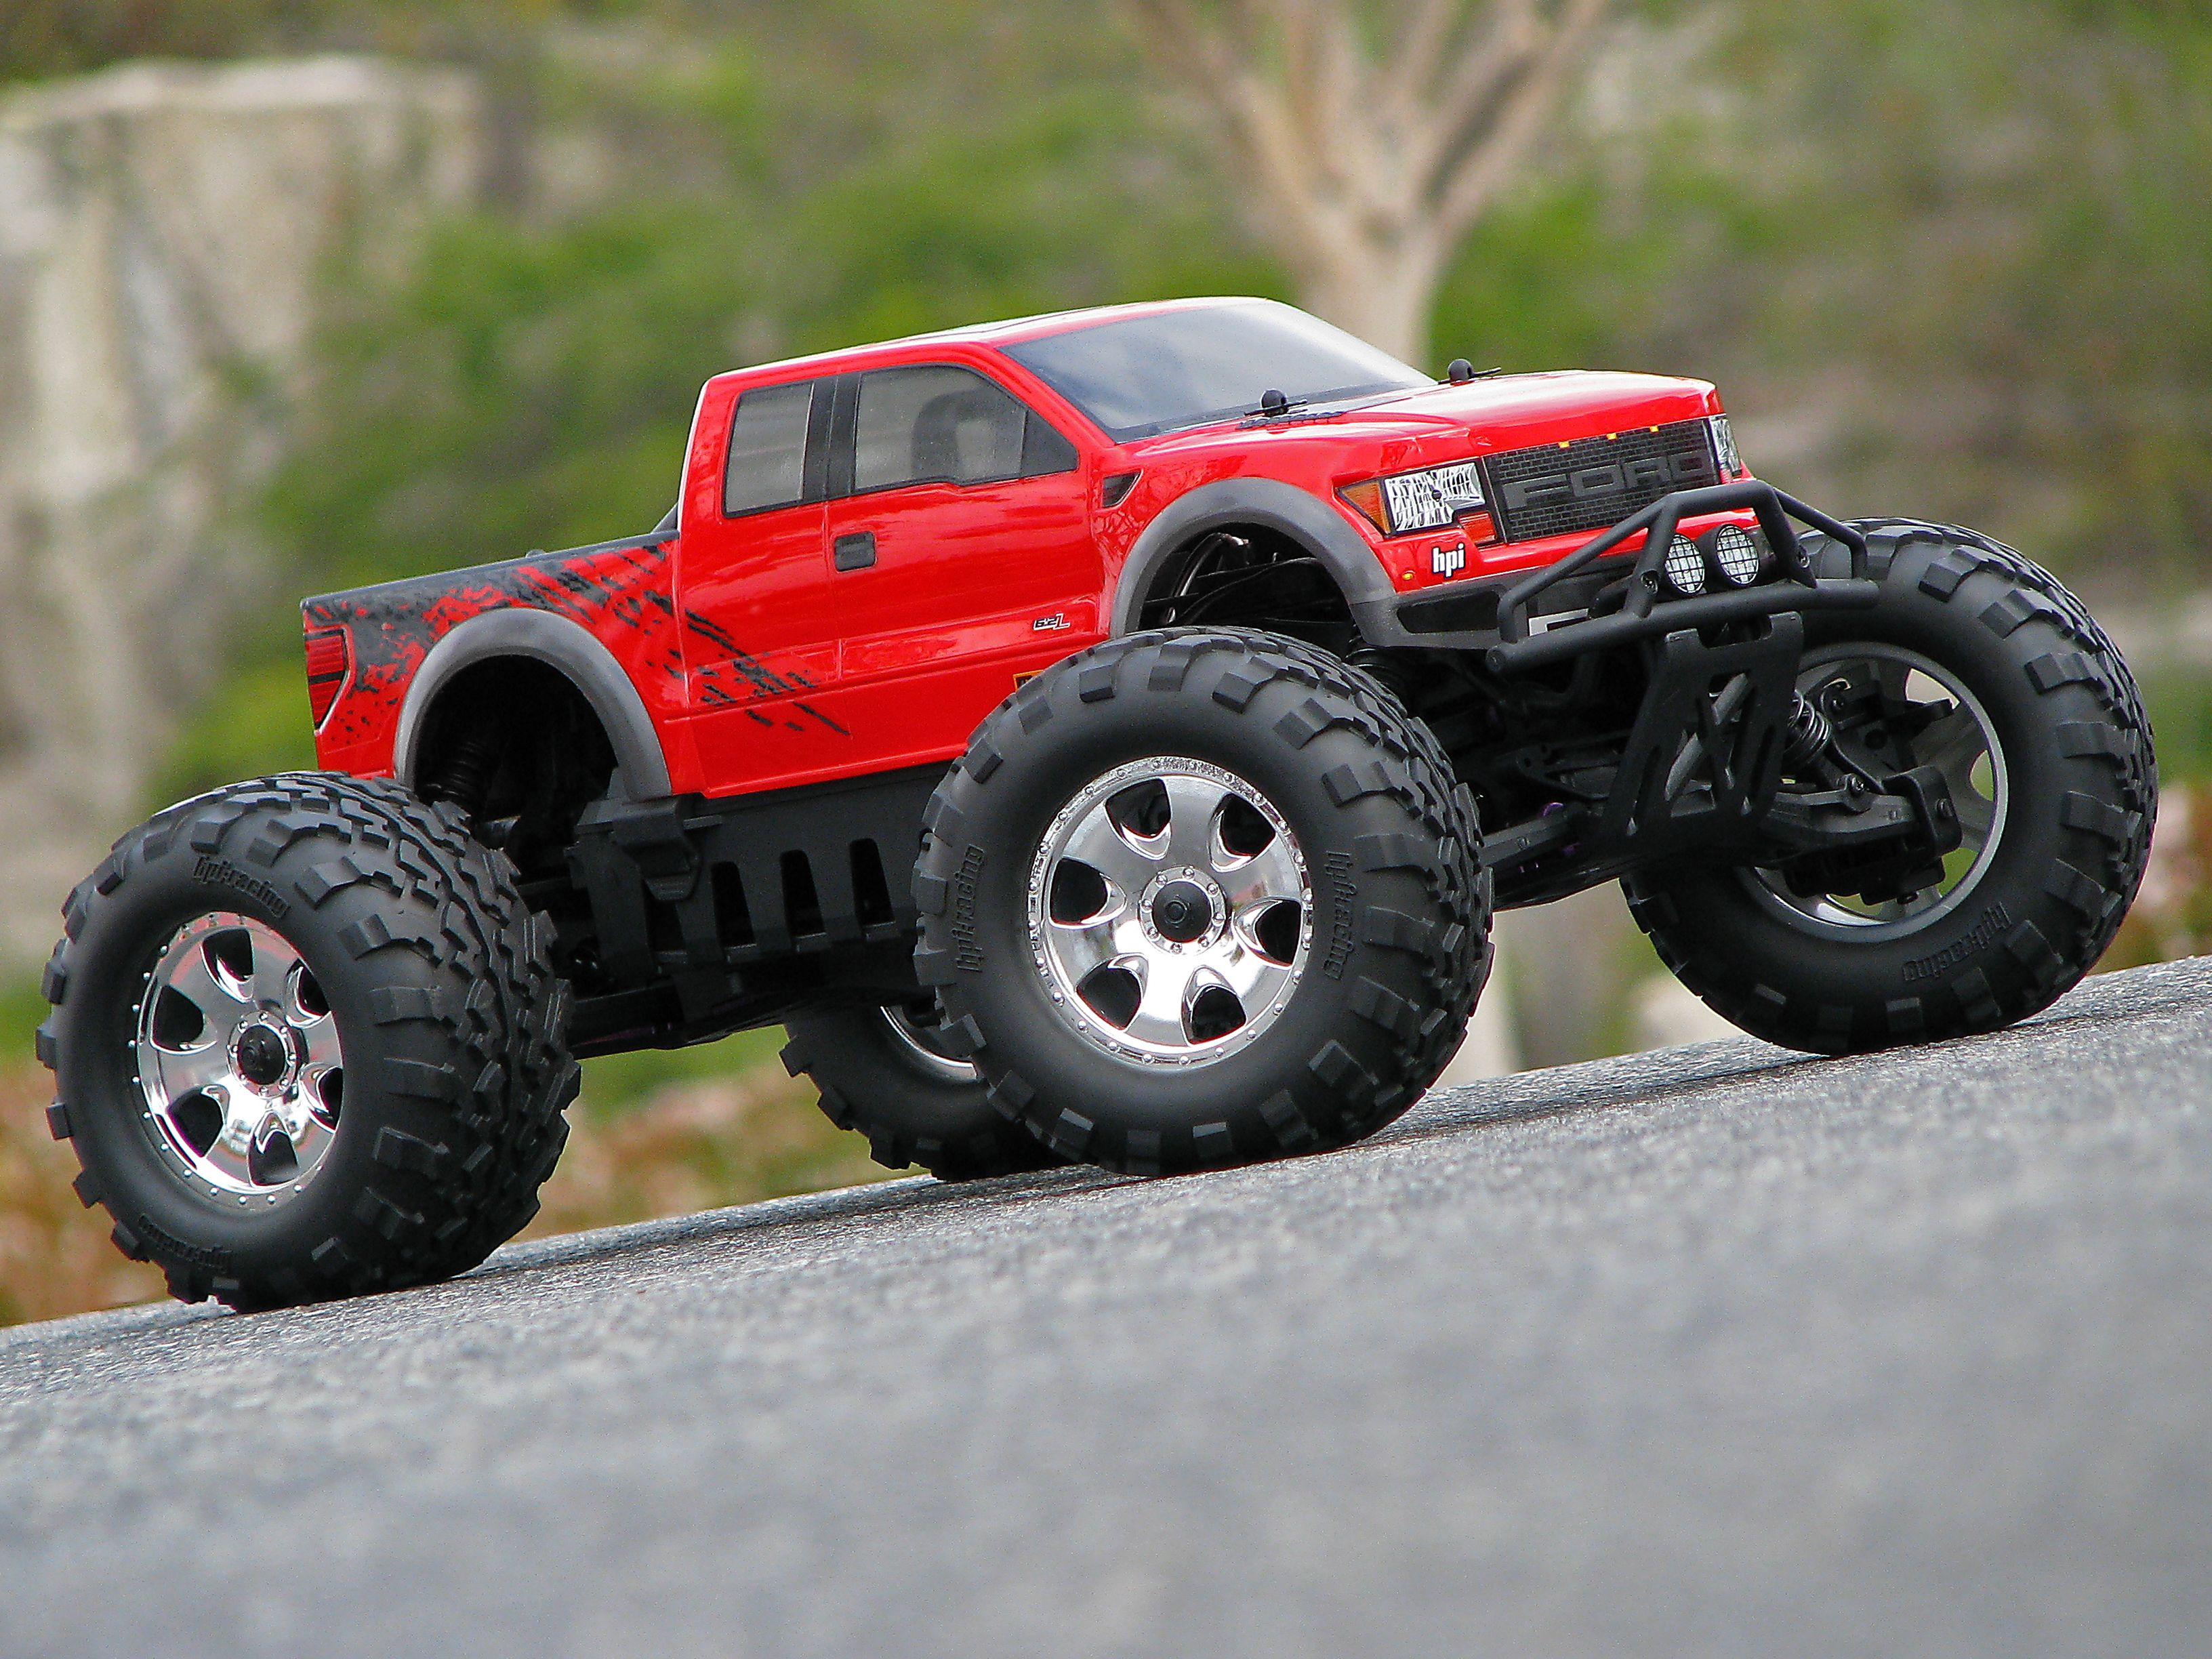 Cool Remote Control Cars: The List #0555: Drive A Monster Truck